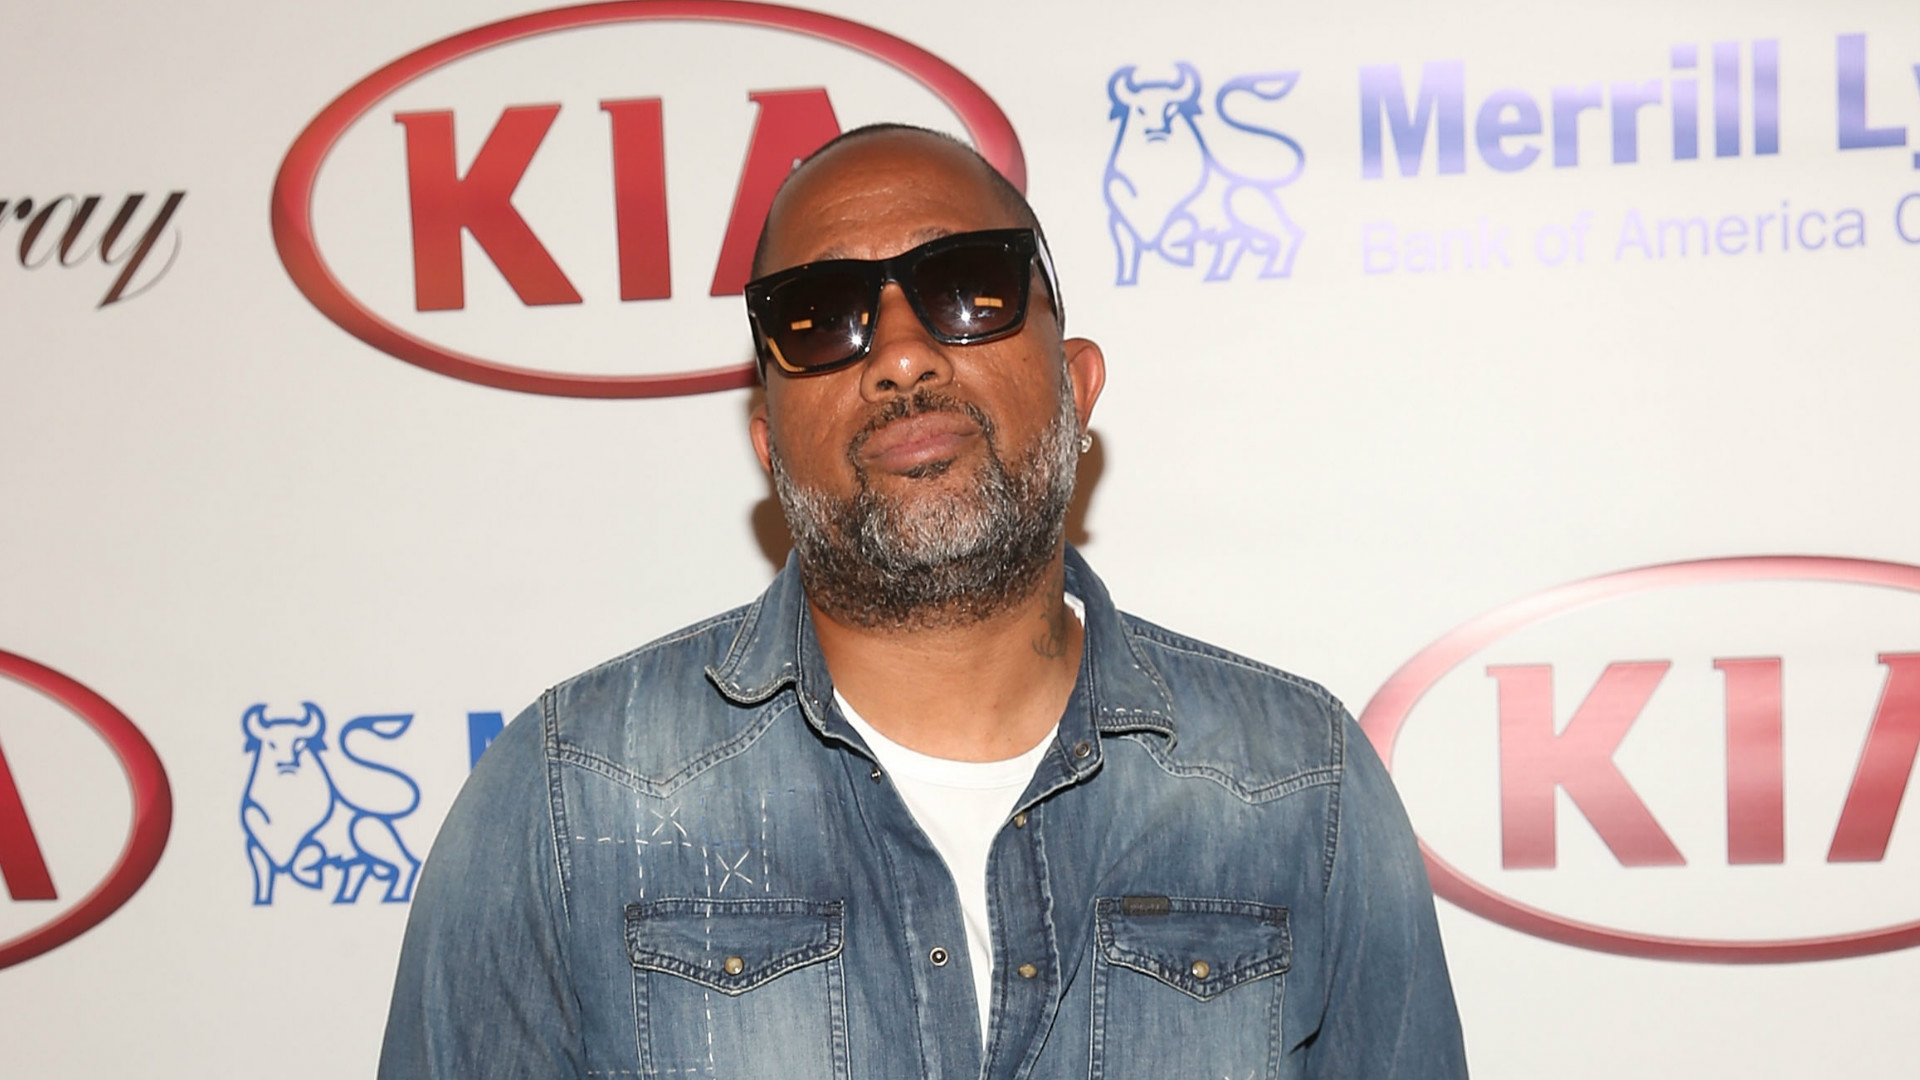 Kenya Barris the creator of Black-ish.